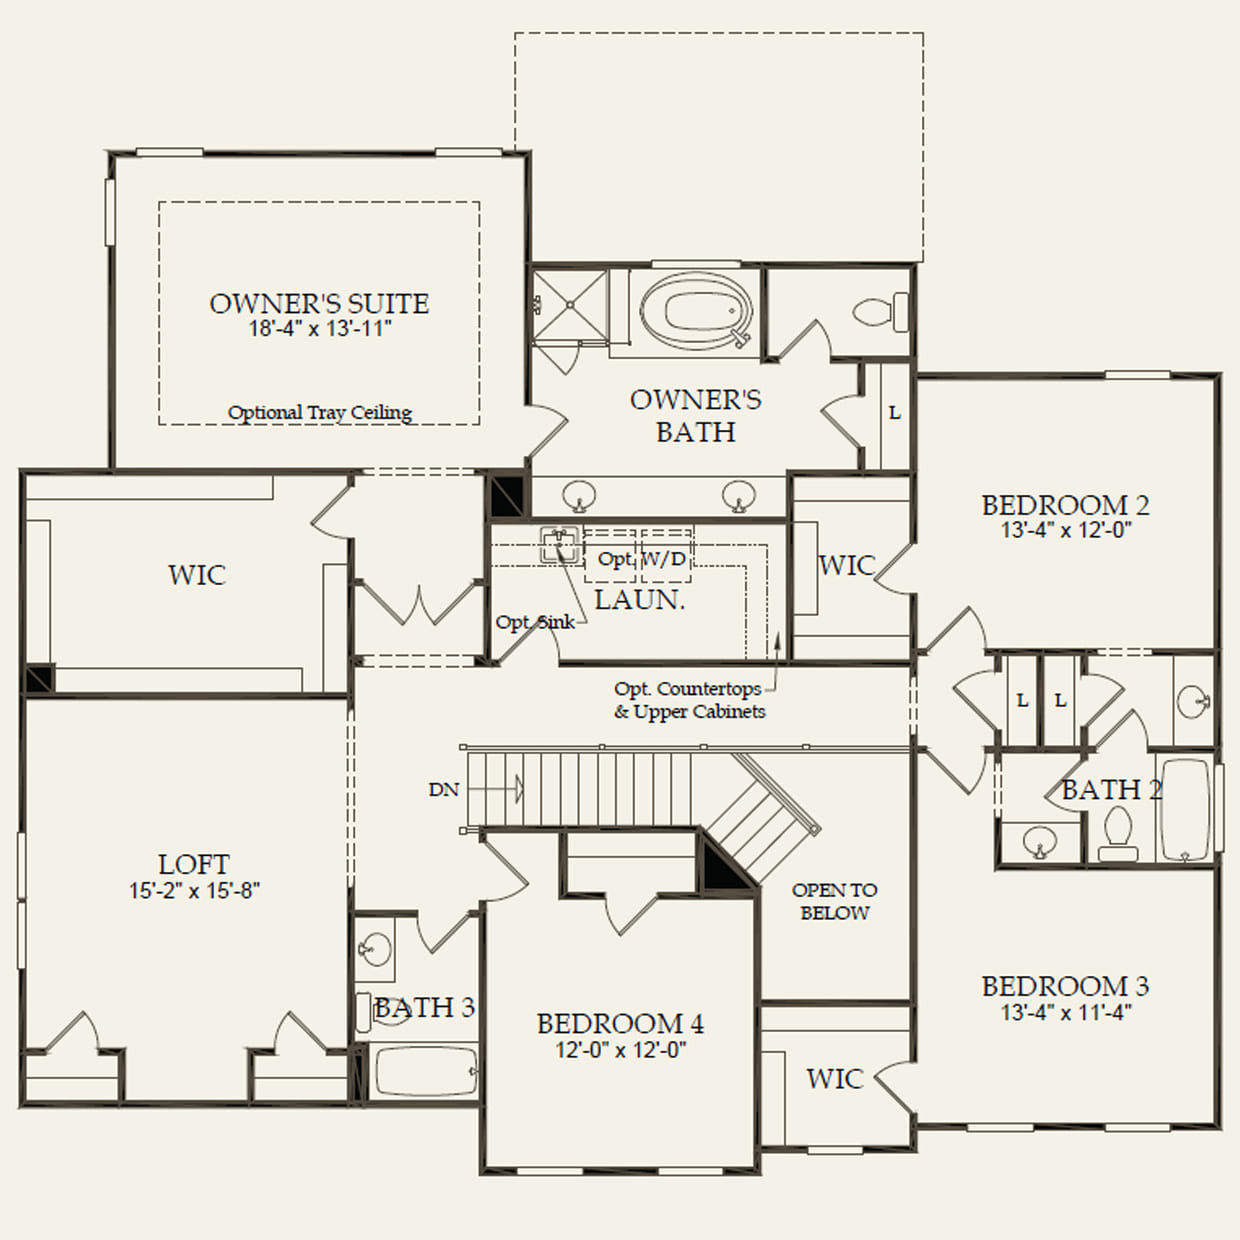 Worthington In Matthews Nc At Castleford Pulte Kitchen Plumbing Diagram Shematic Second Floor